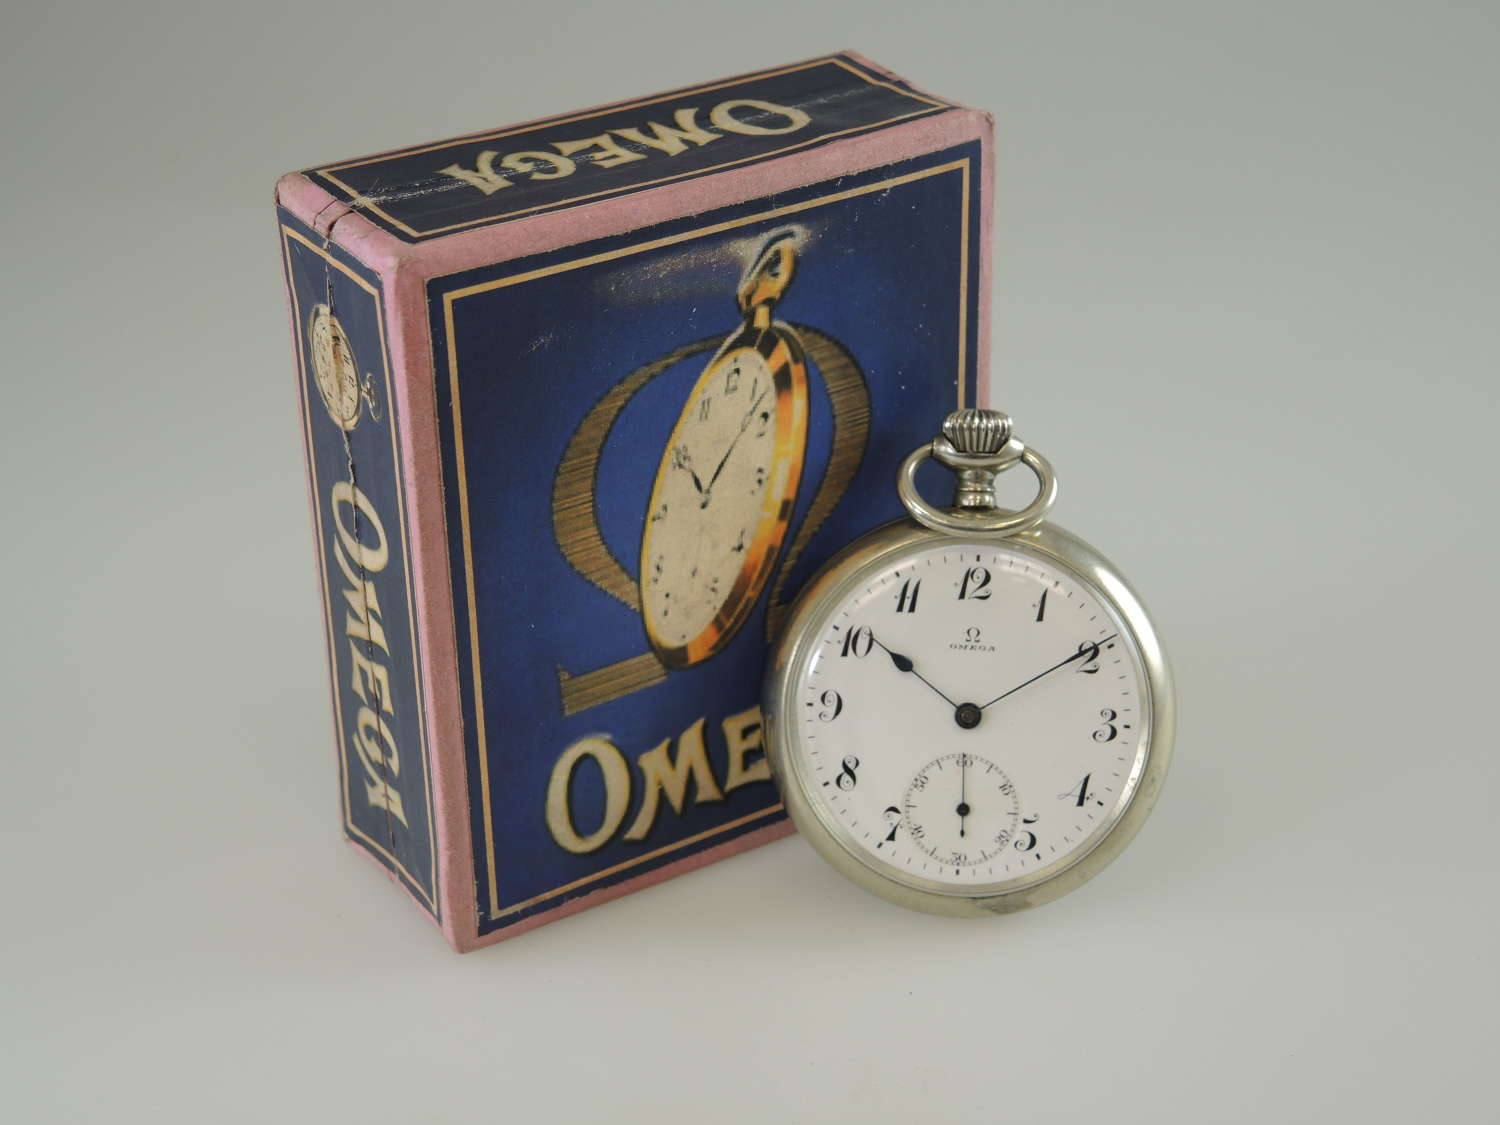 Vintage Omega pocket watch. With Box c1918